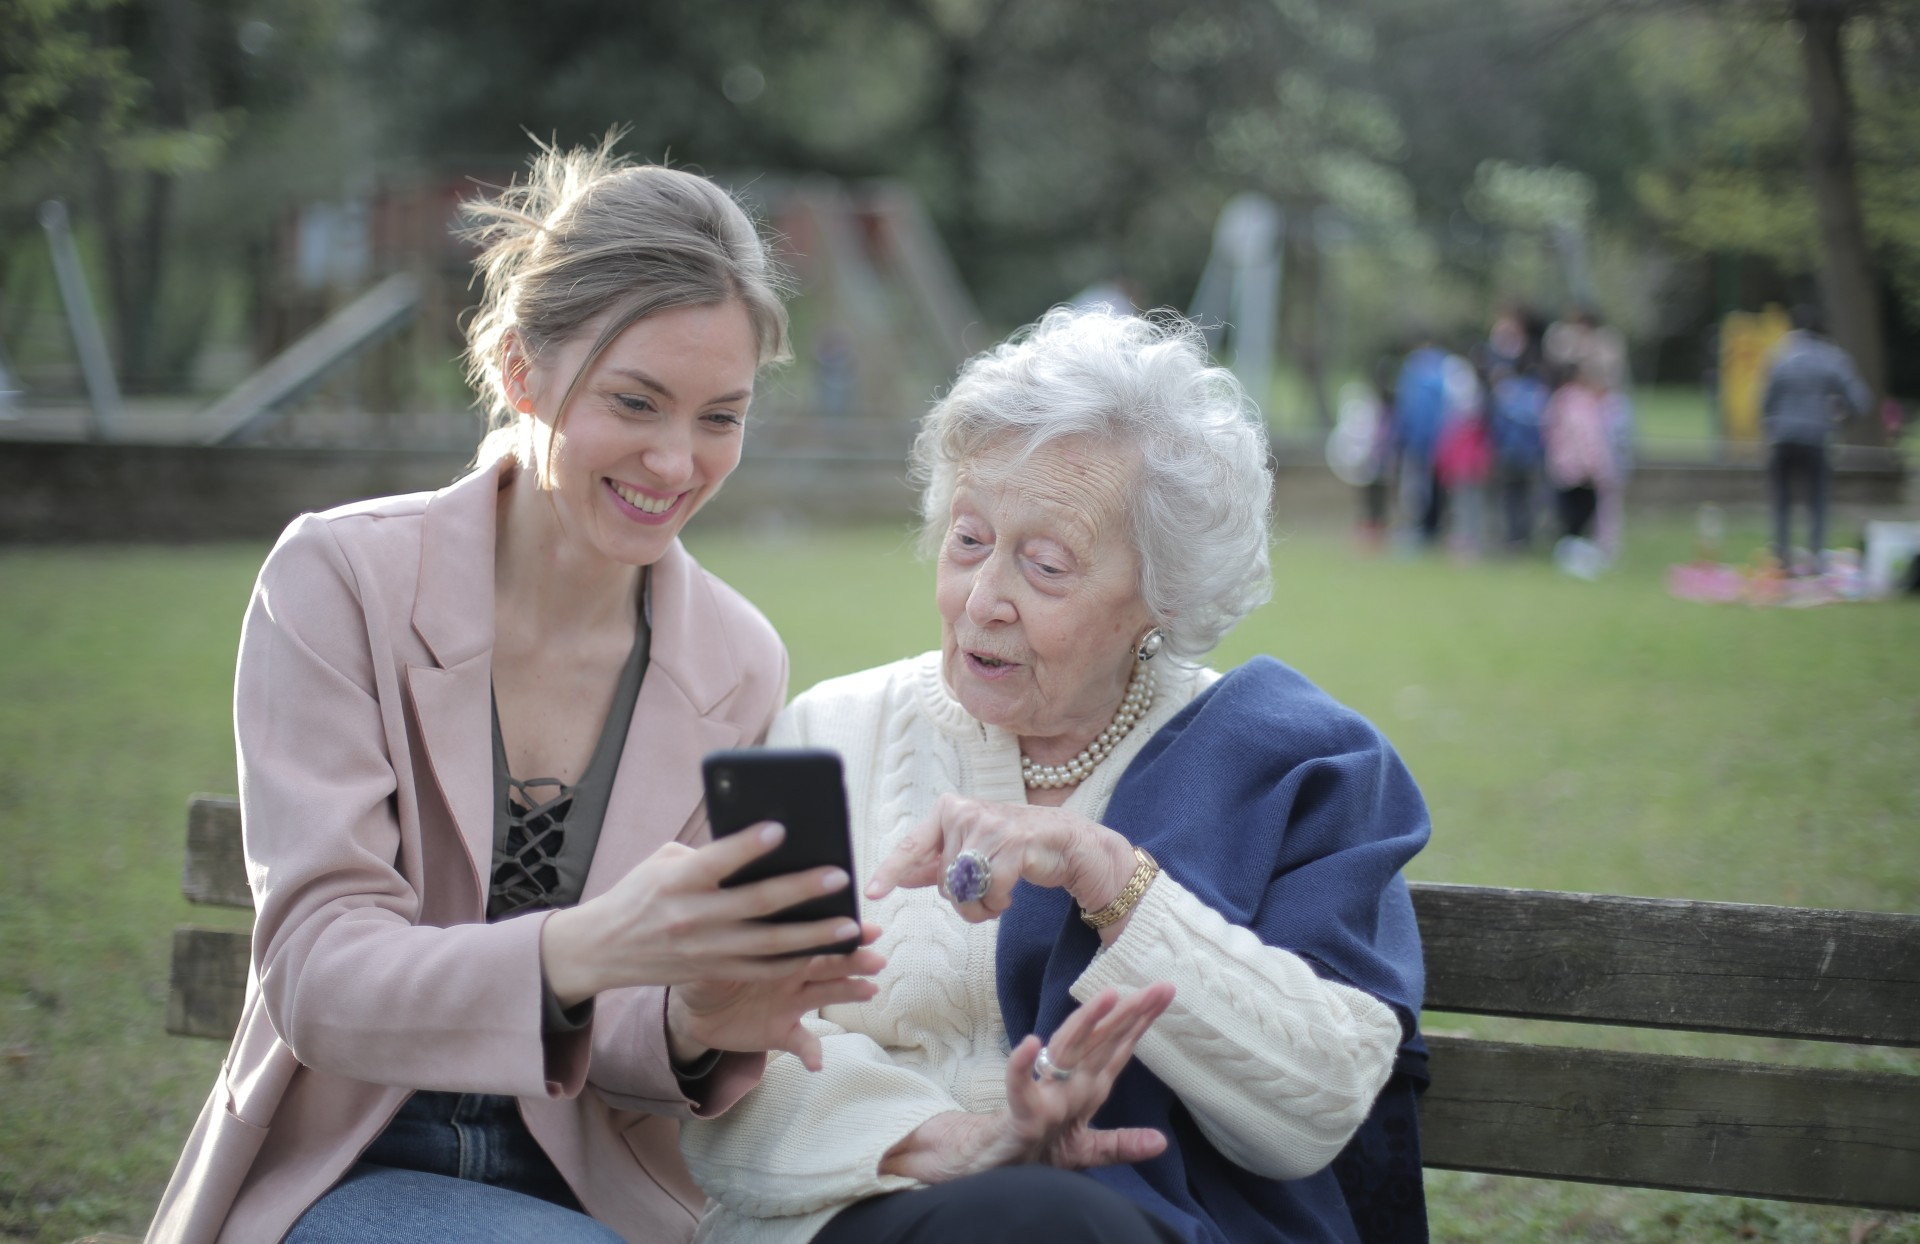 Older adults set their sights on lively city centres